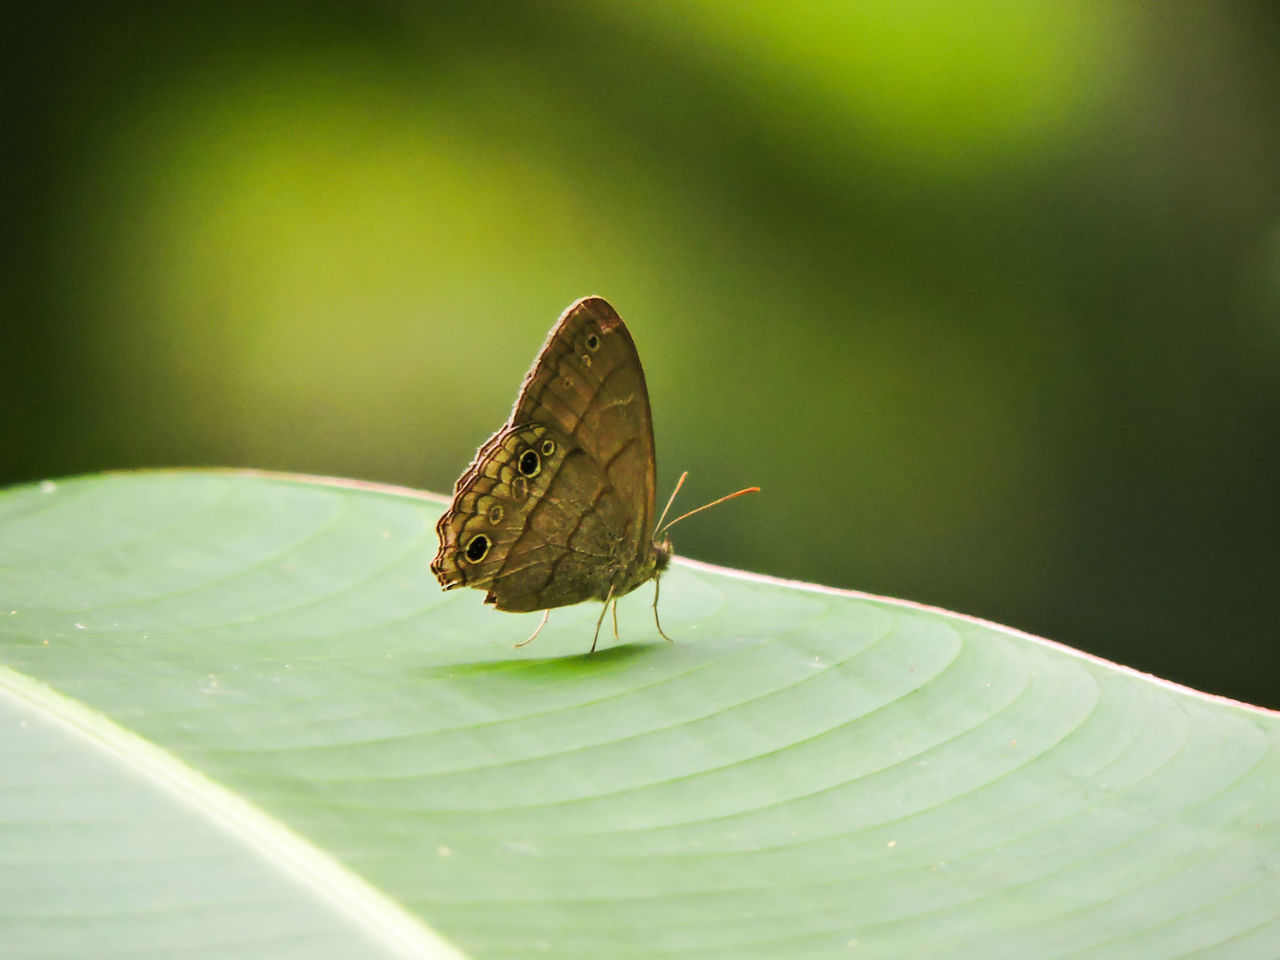 Animal Themes Animals Art In Nature Banana Leaf Beauty In Nature Butterfly Butterfly - Insect Green Color Insect Leaf Magazhu Natural Pattern Nature No People Outdoors Satyr Wildlife Yelapa Showcase July